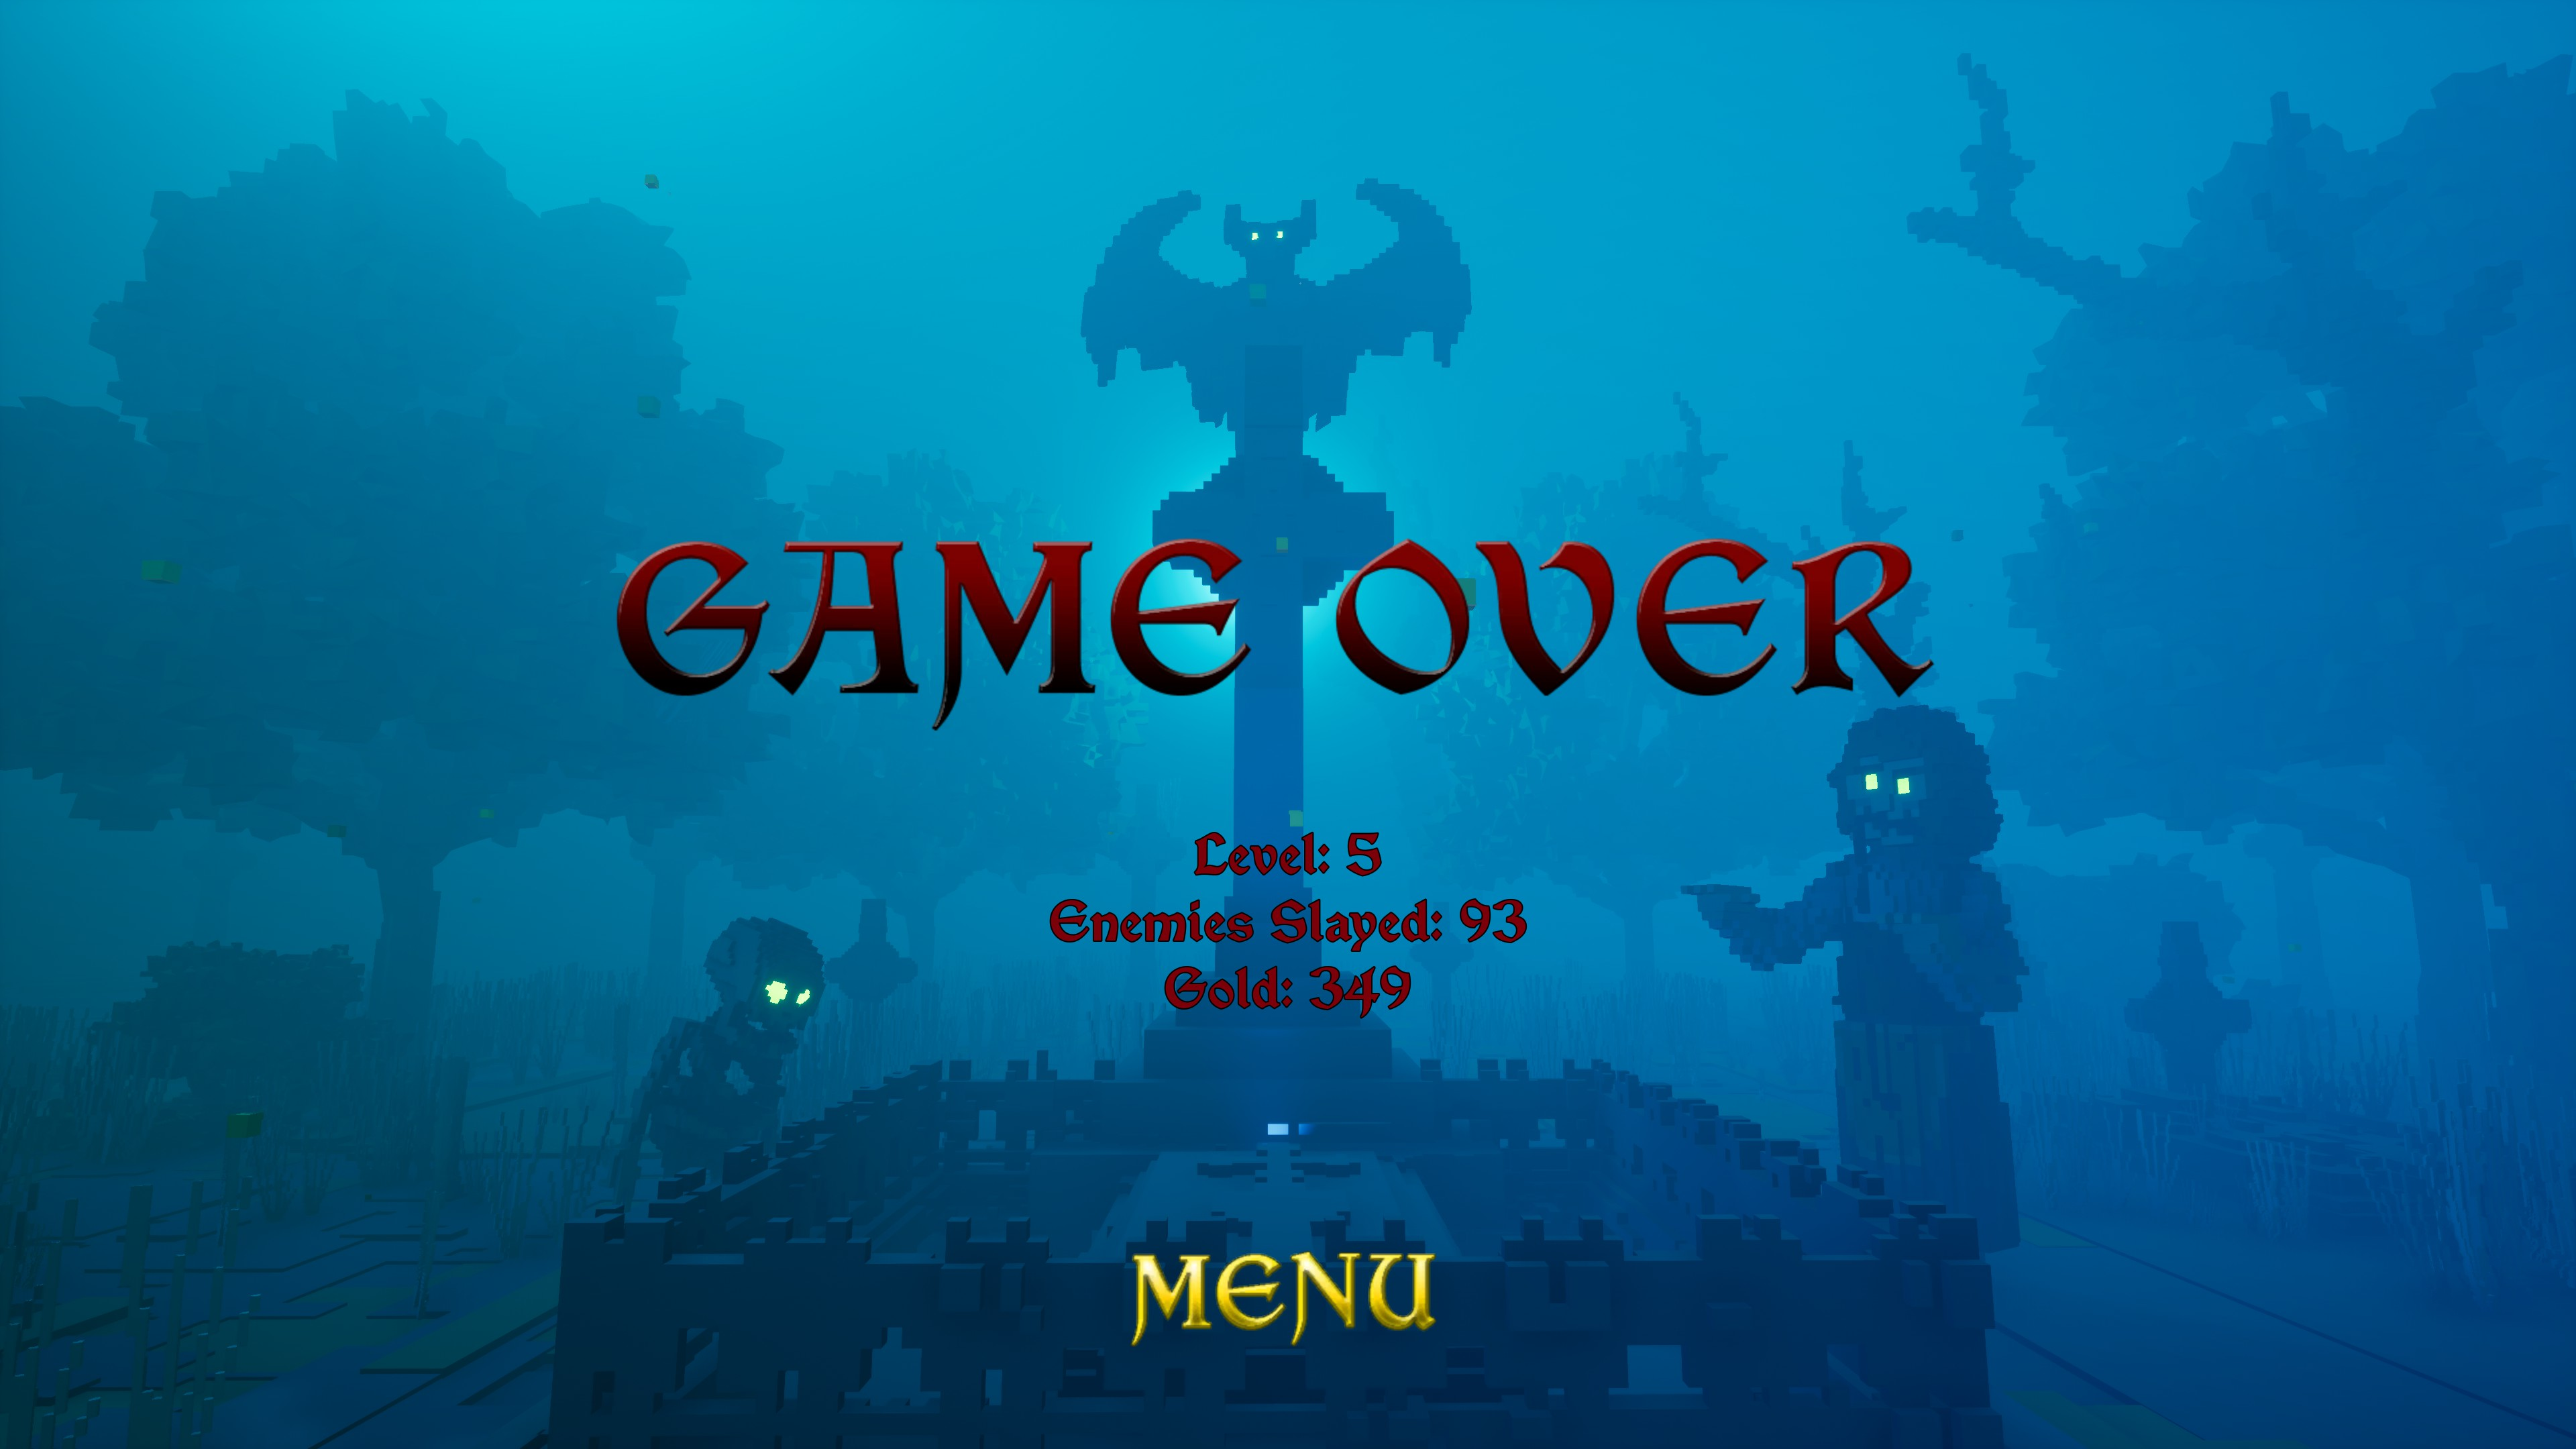 Game over, level 5, enemies slayed 93, gold 349